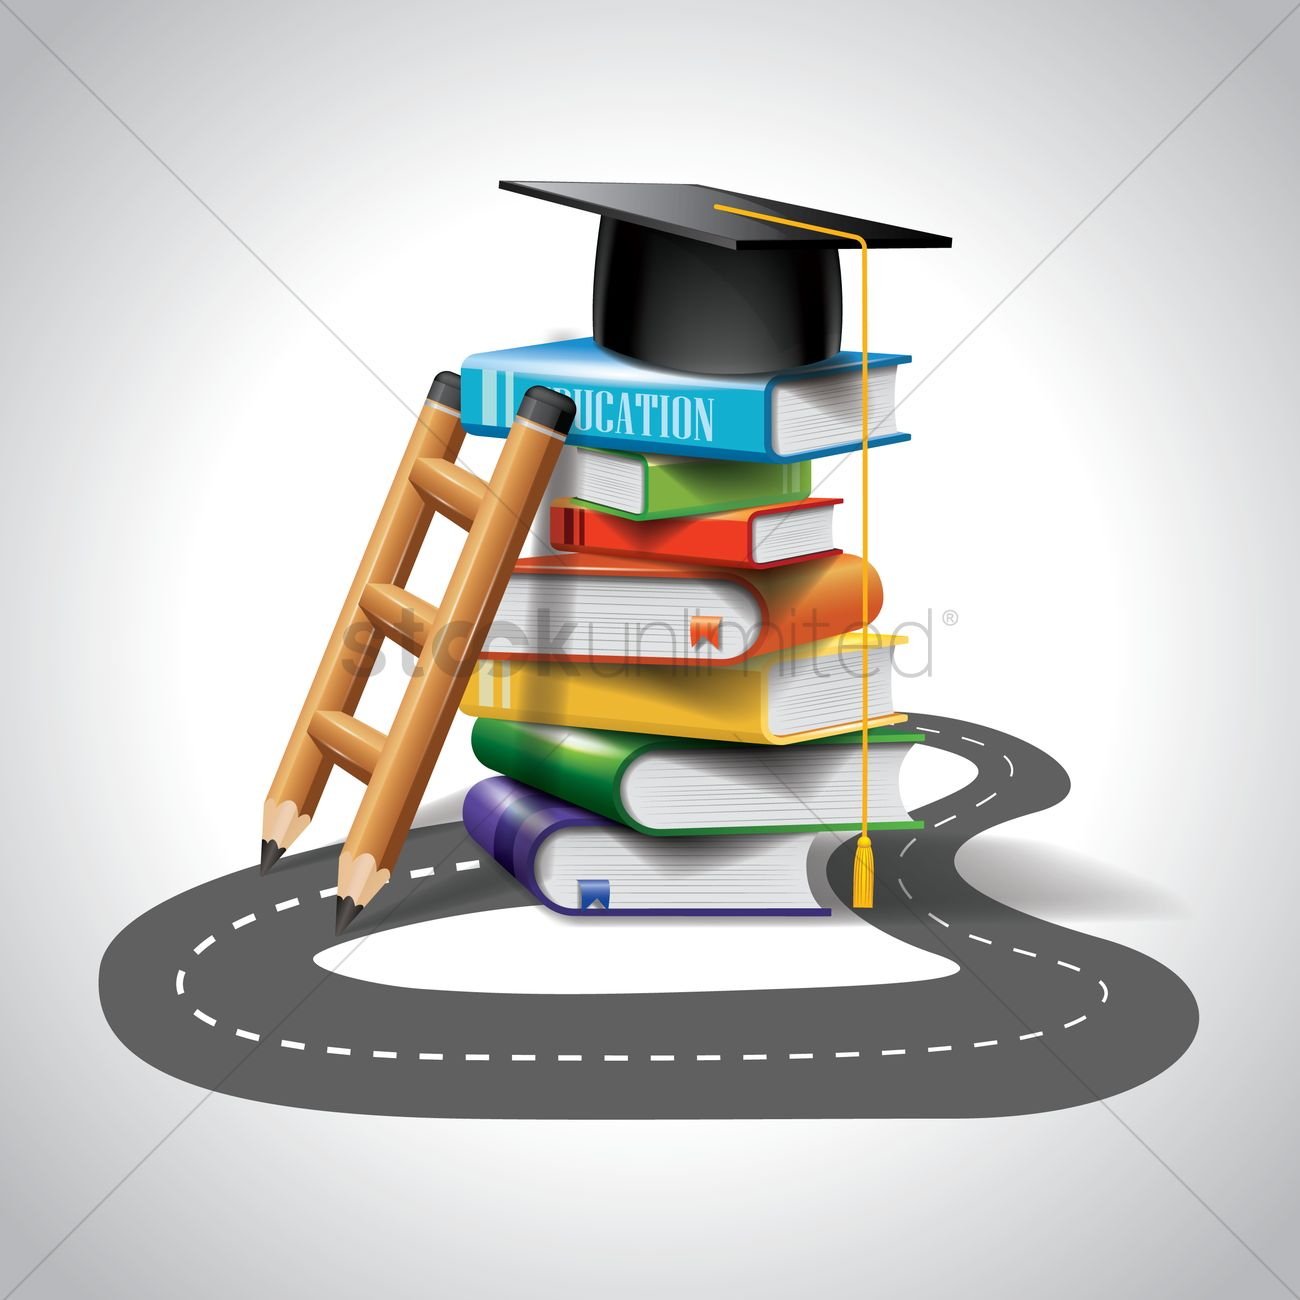 education wallpaper vector image 1796152 stockunlimited